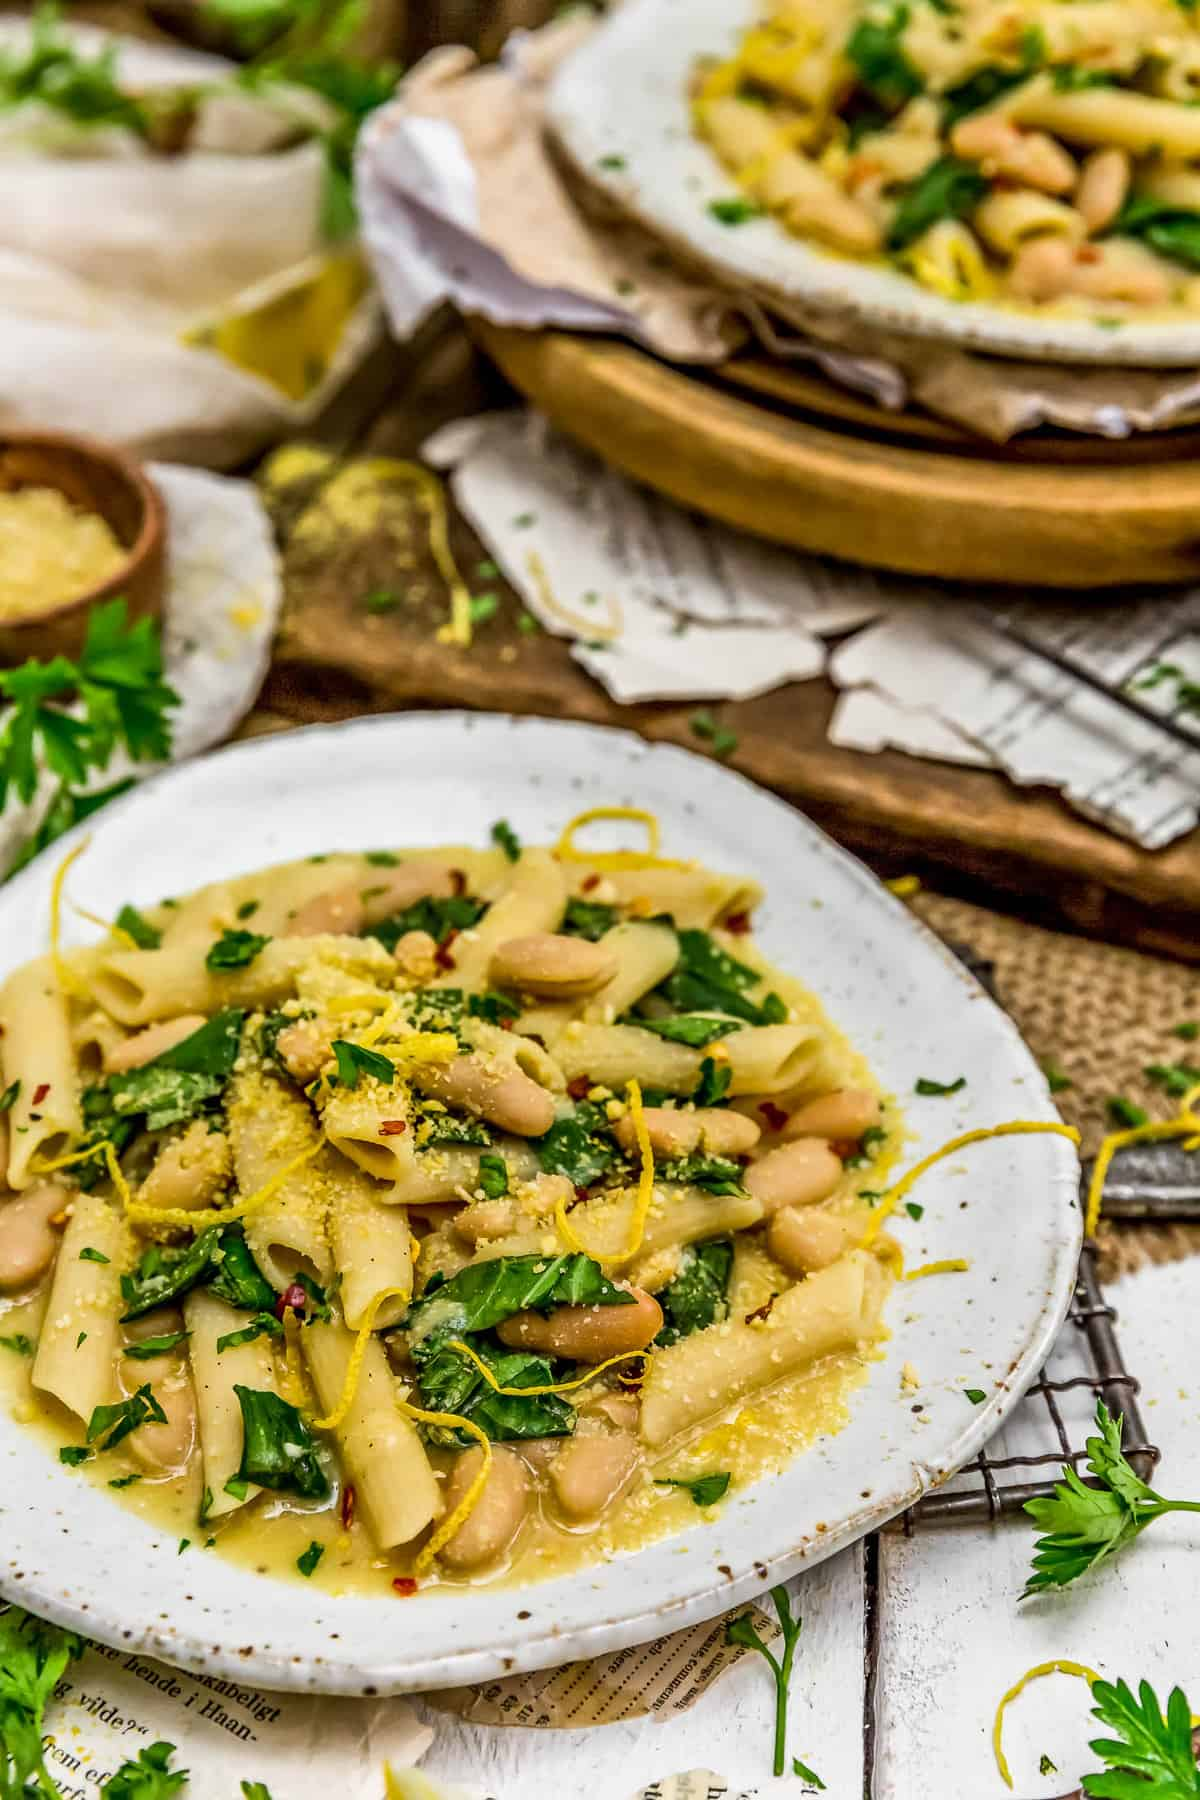 Plated Lemony Pasta with Greens and Beans